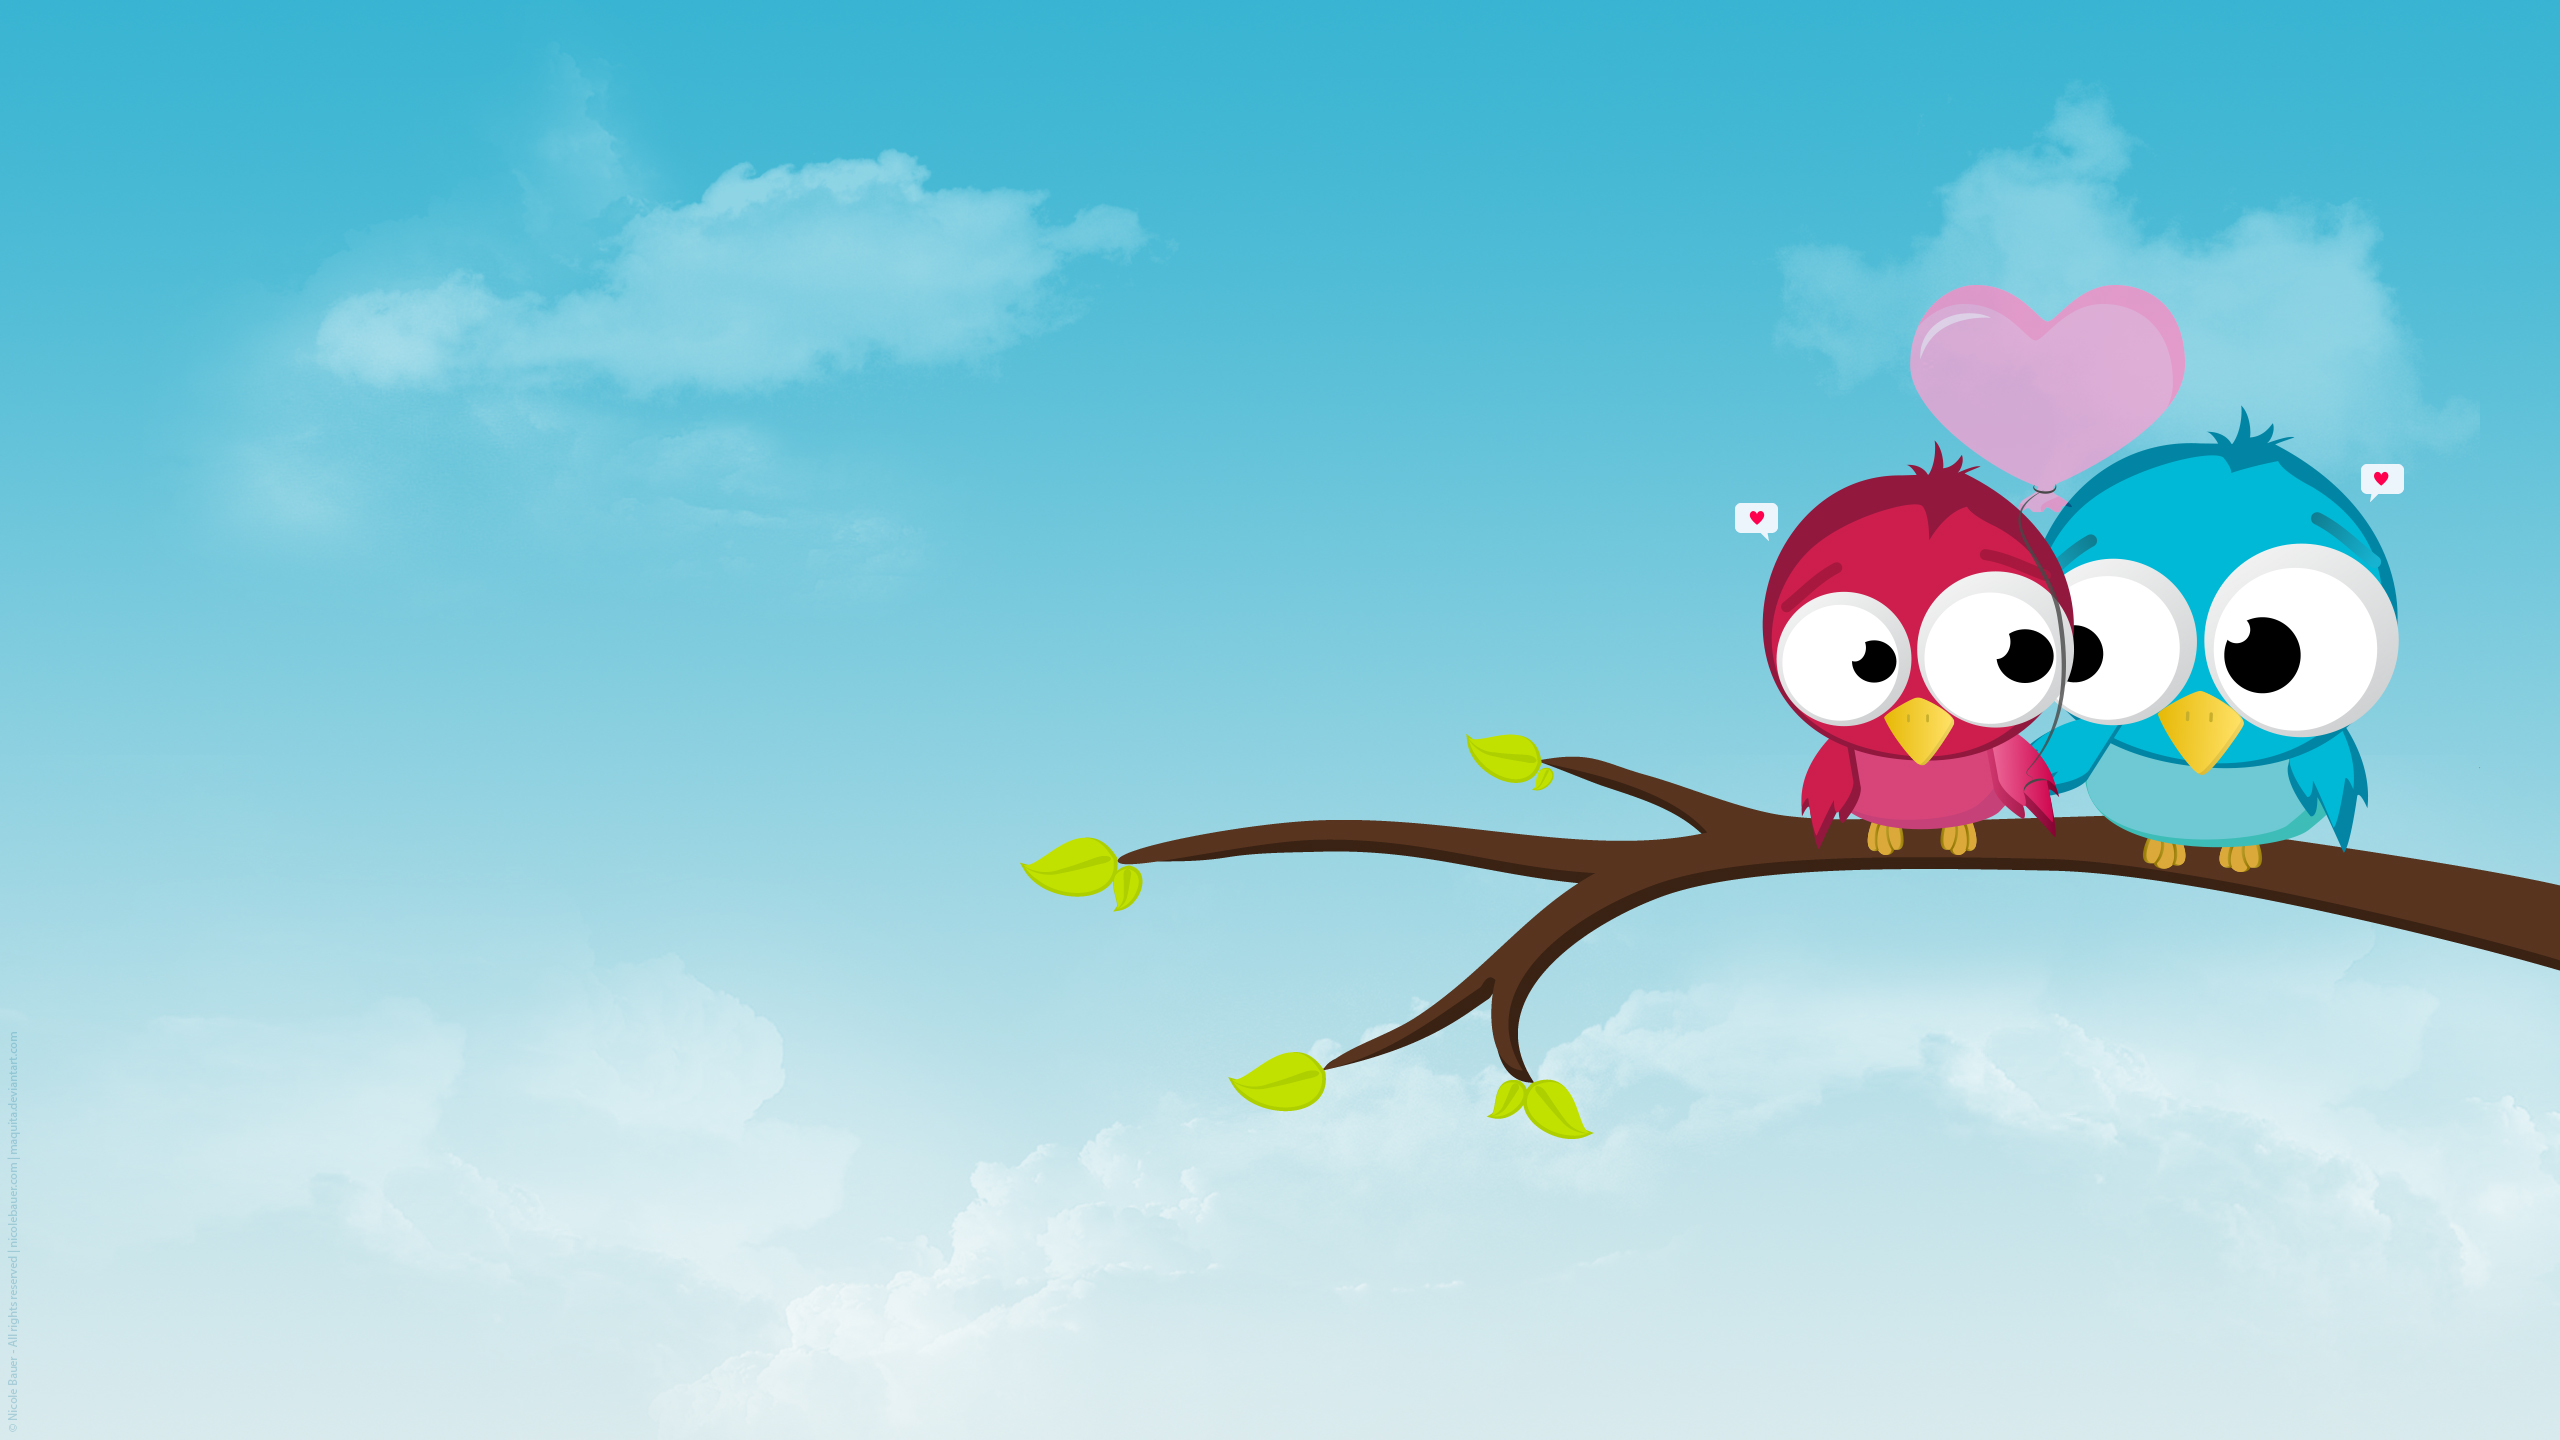 Cute love wallpapers for desktop wallpapersafari - Love cartoon hd ...